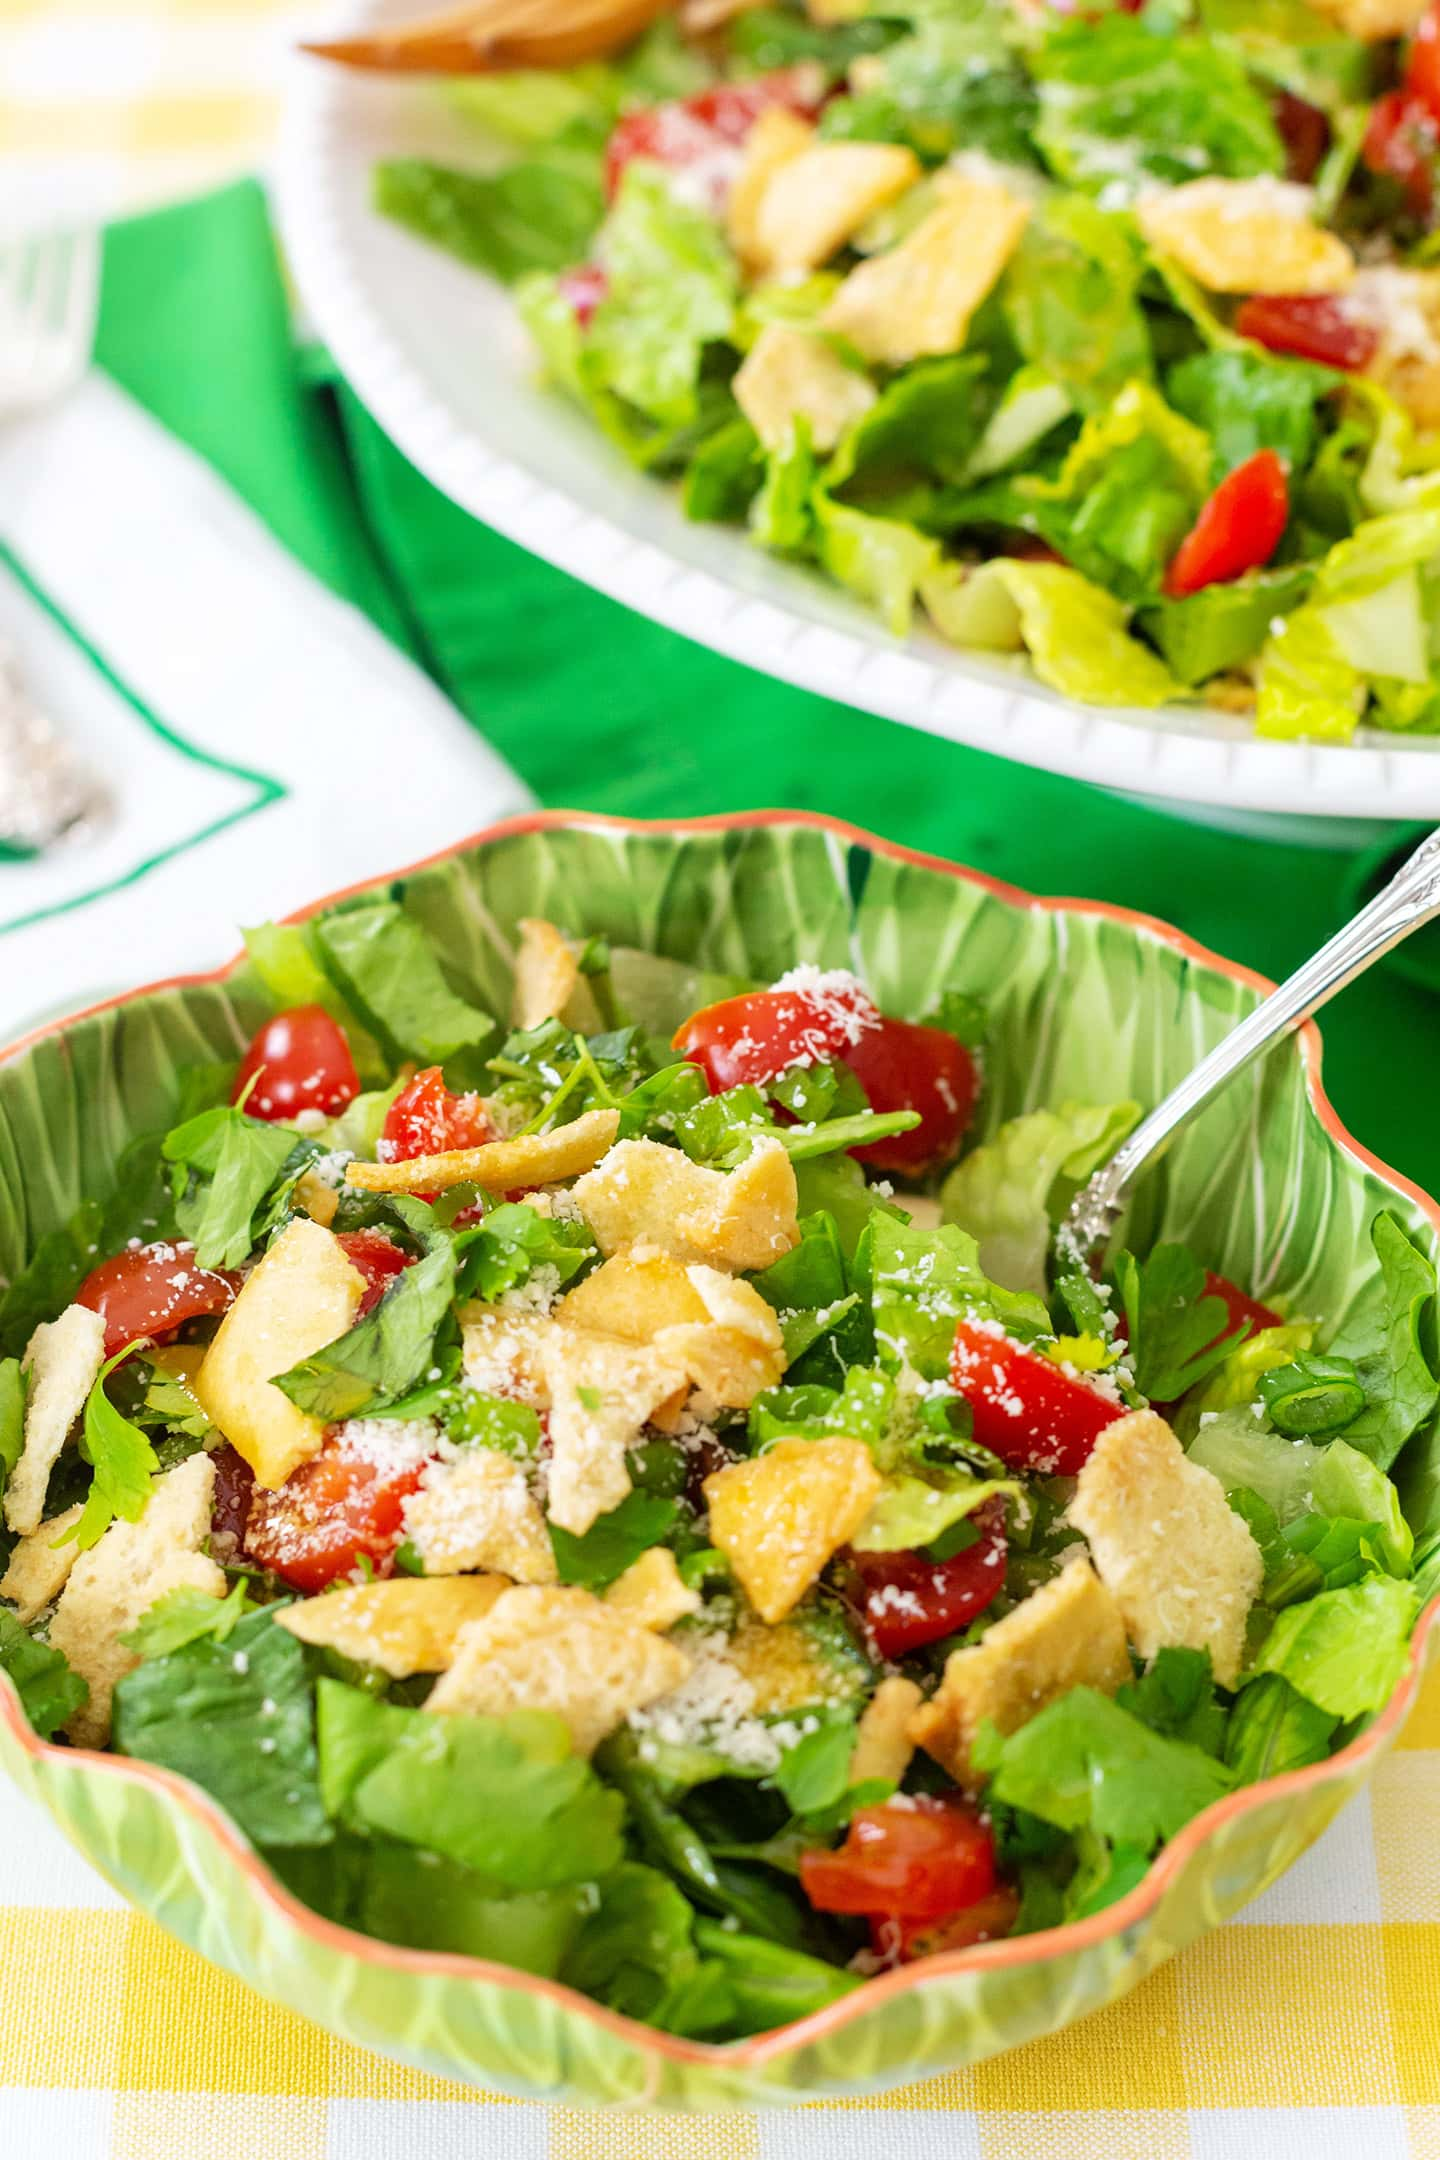 Green salad with pita chips, parmesan cheese and vinegar oil dressing.